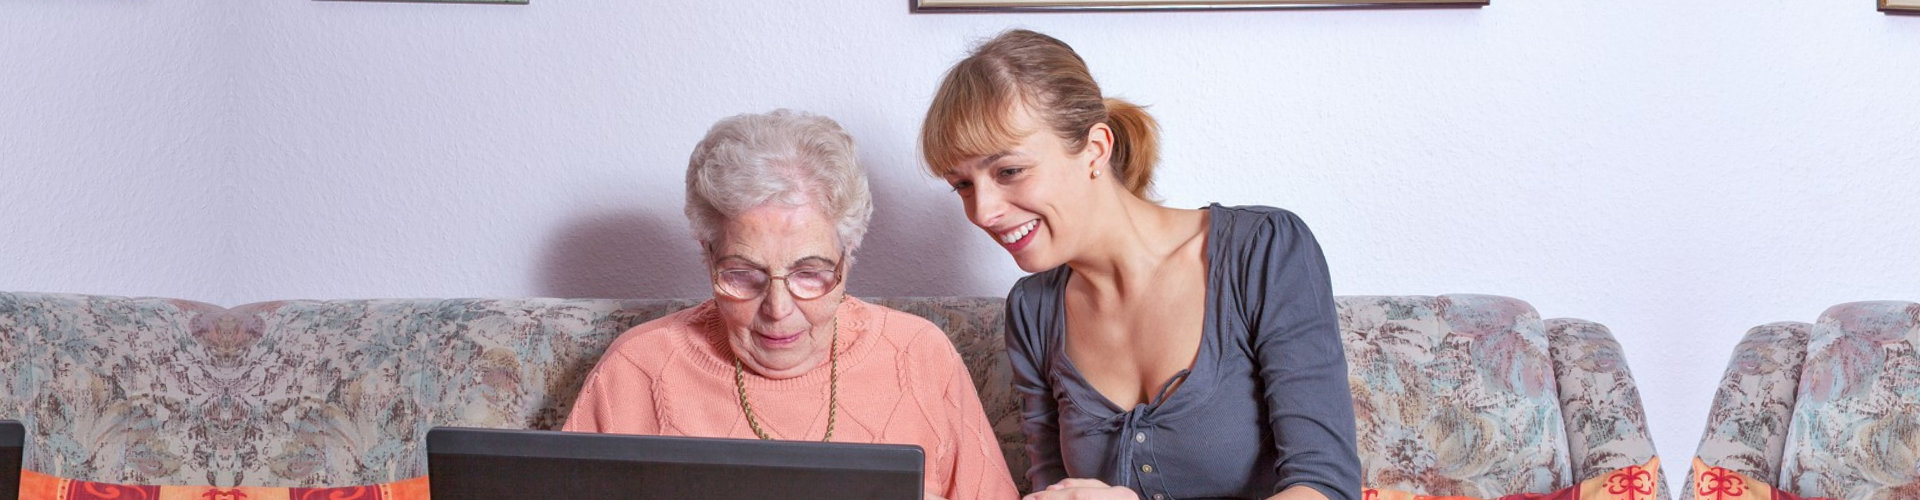 caregiver assiting senior woman in using a computer